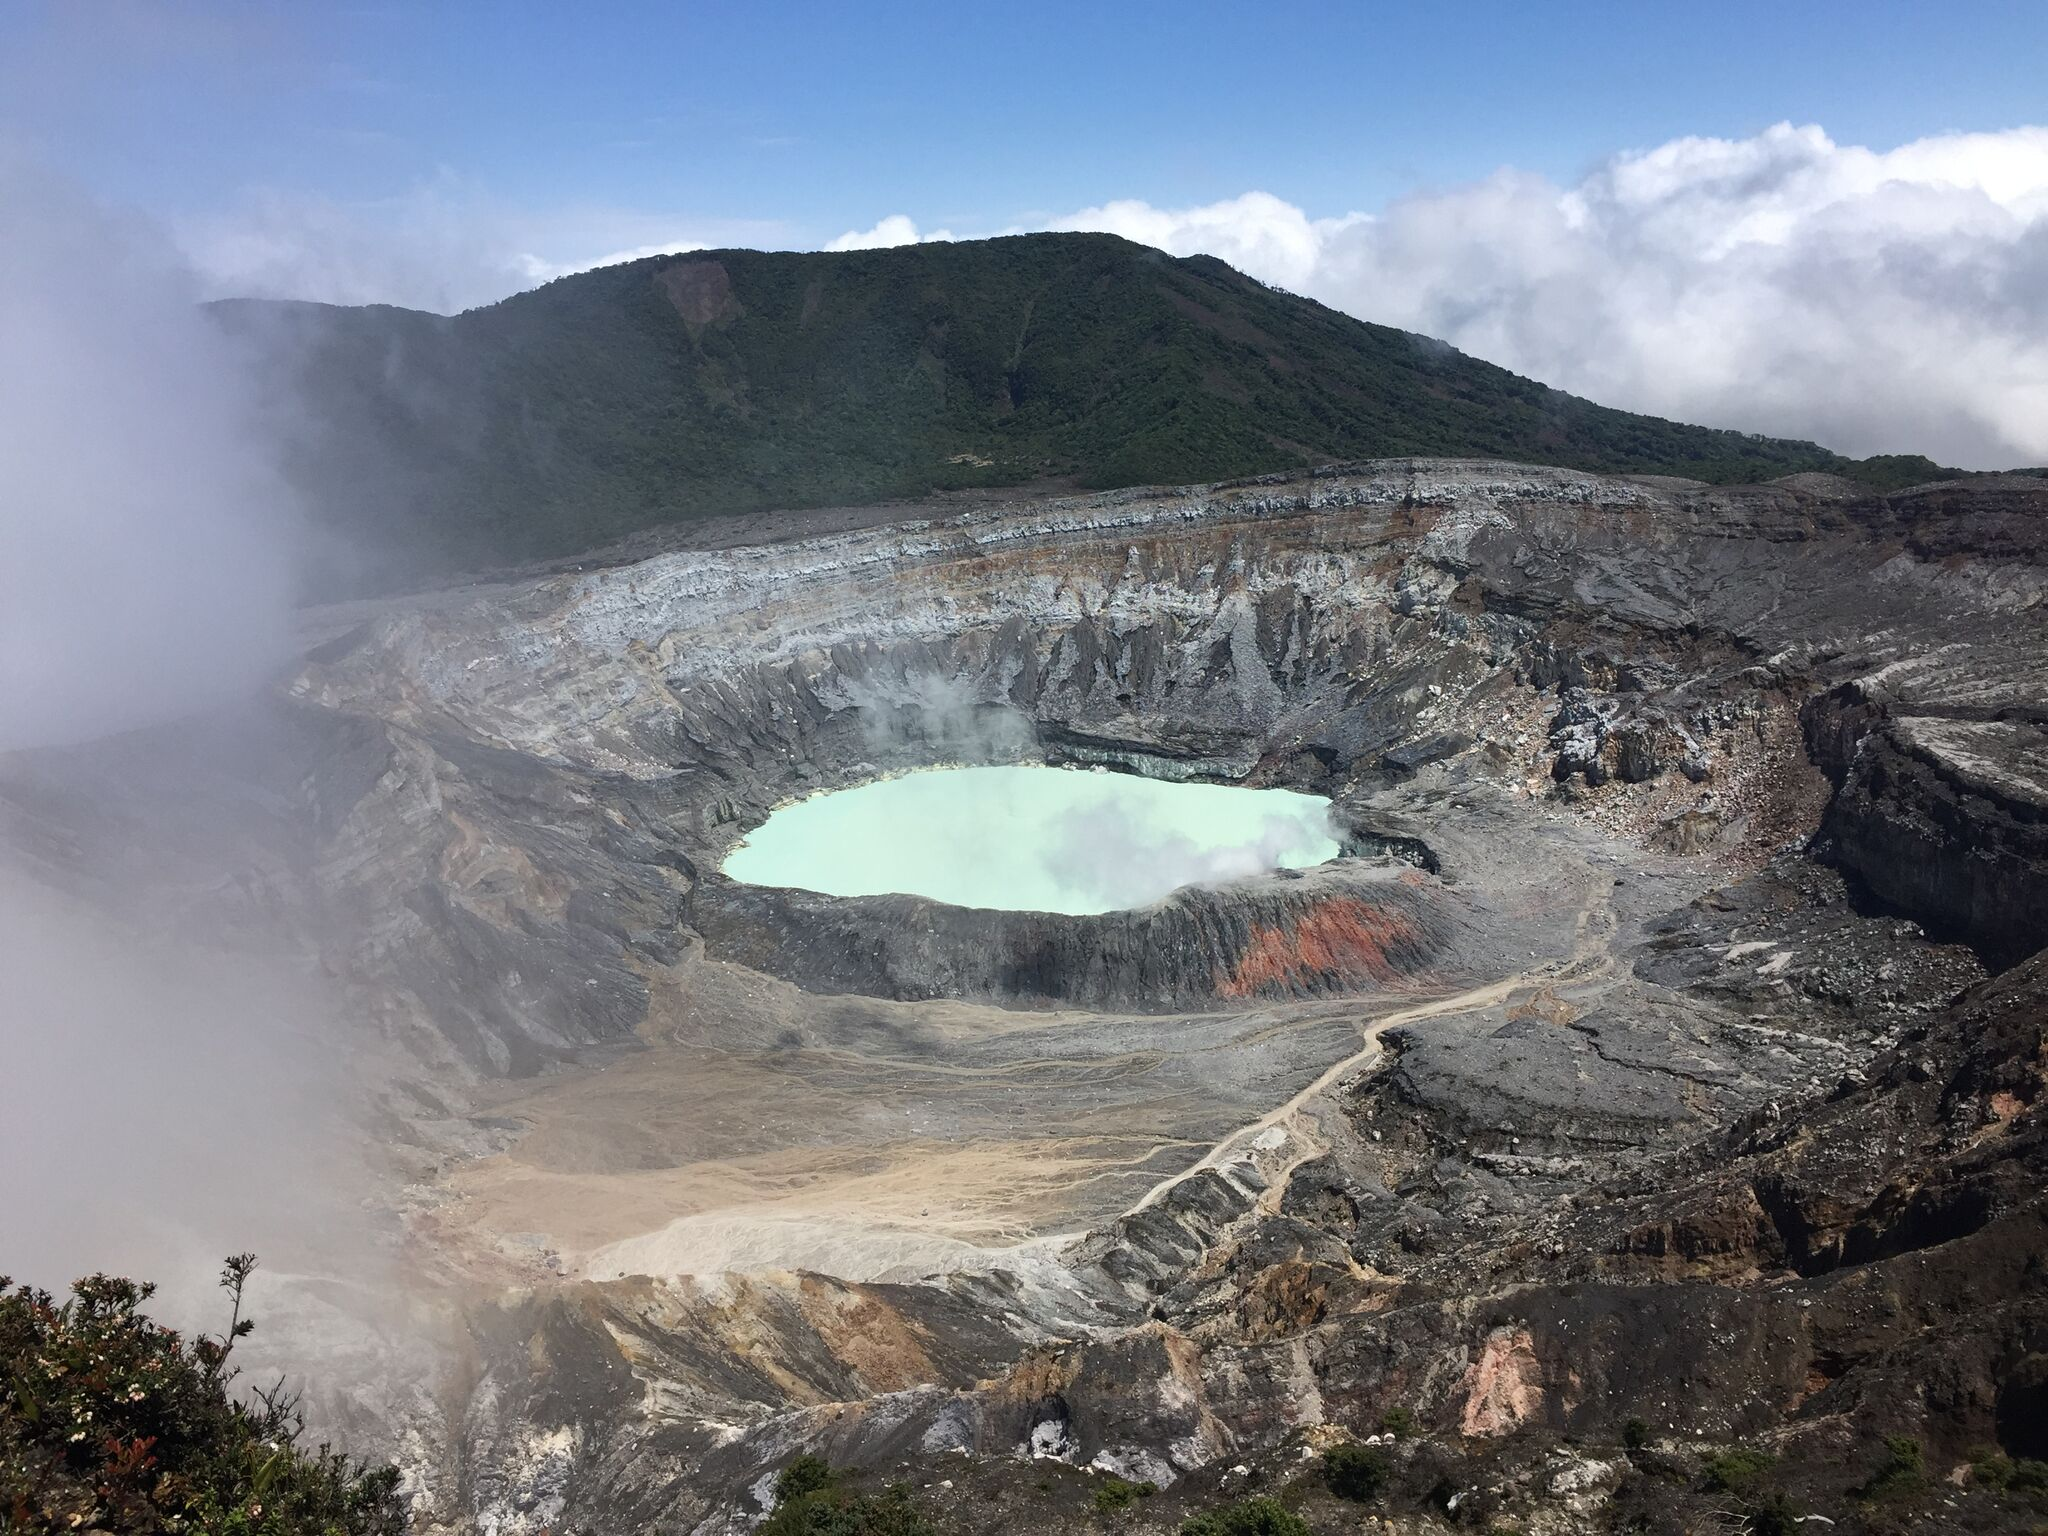 The blue-green hue at the edge of the Poas Volcano in Costa Rica. Photo credit: M. Ciavardini